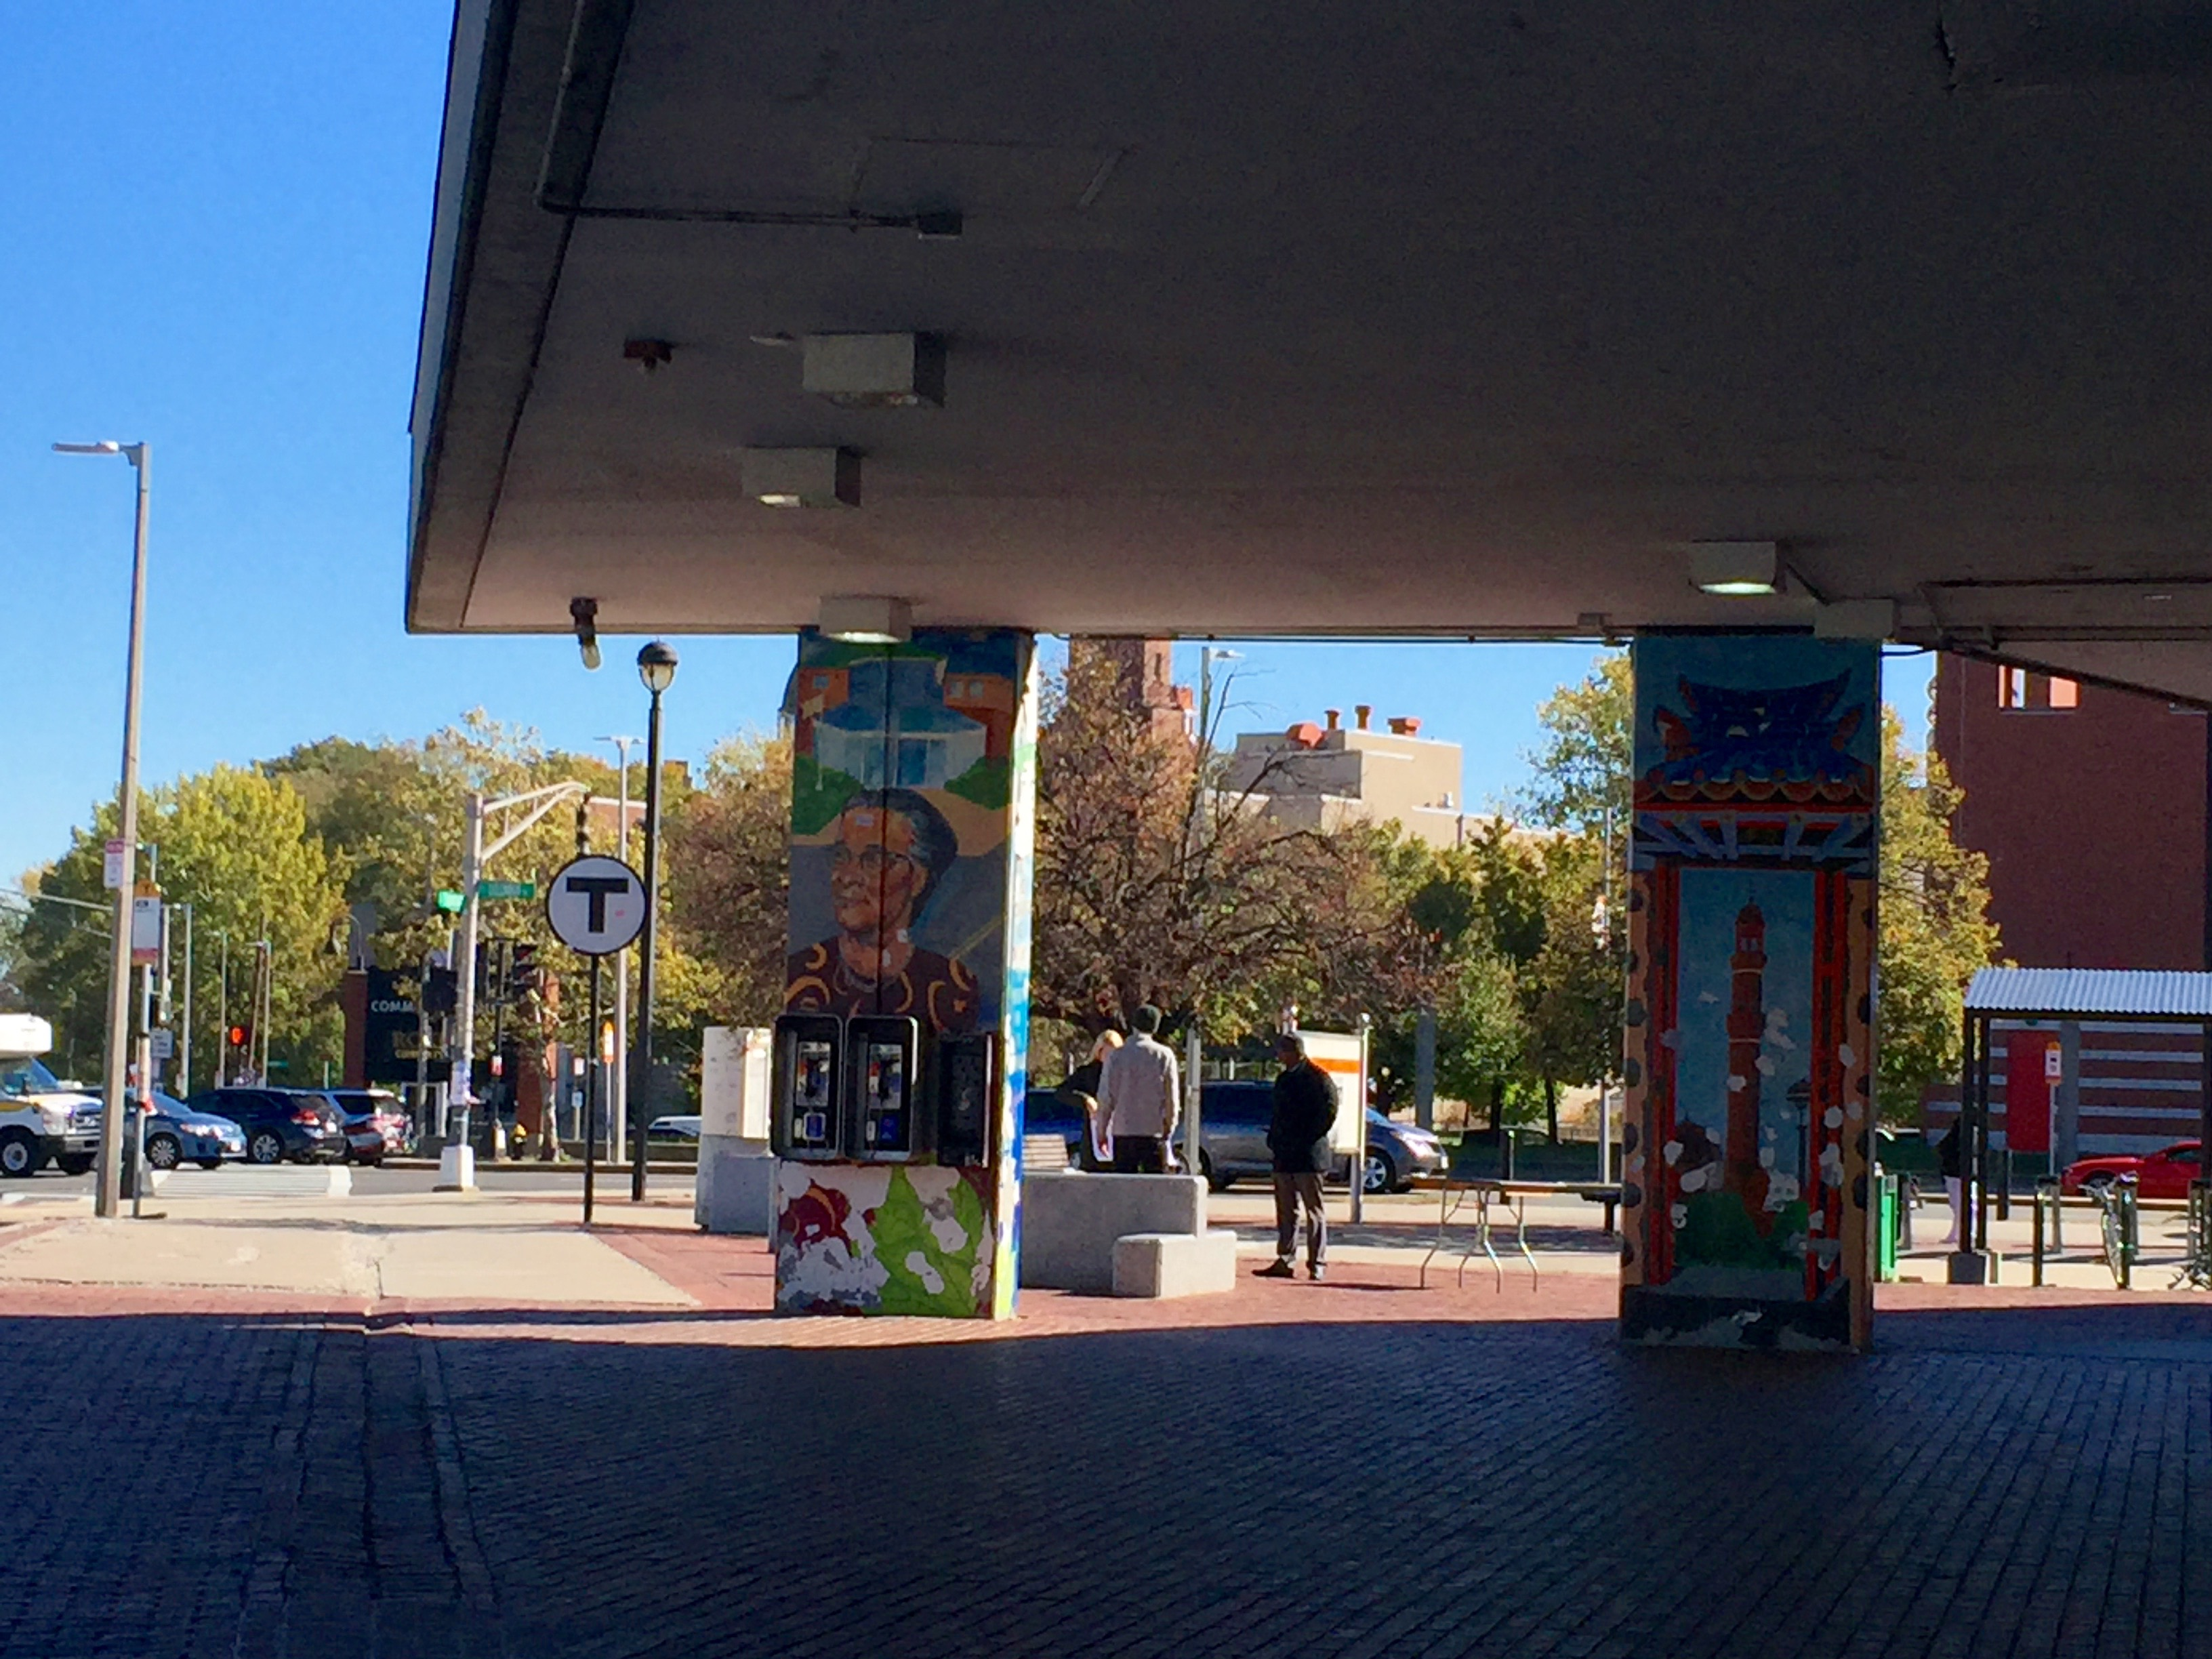 This mural can be found at the Roxbury Crossing T station in Roxbury.